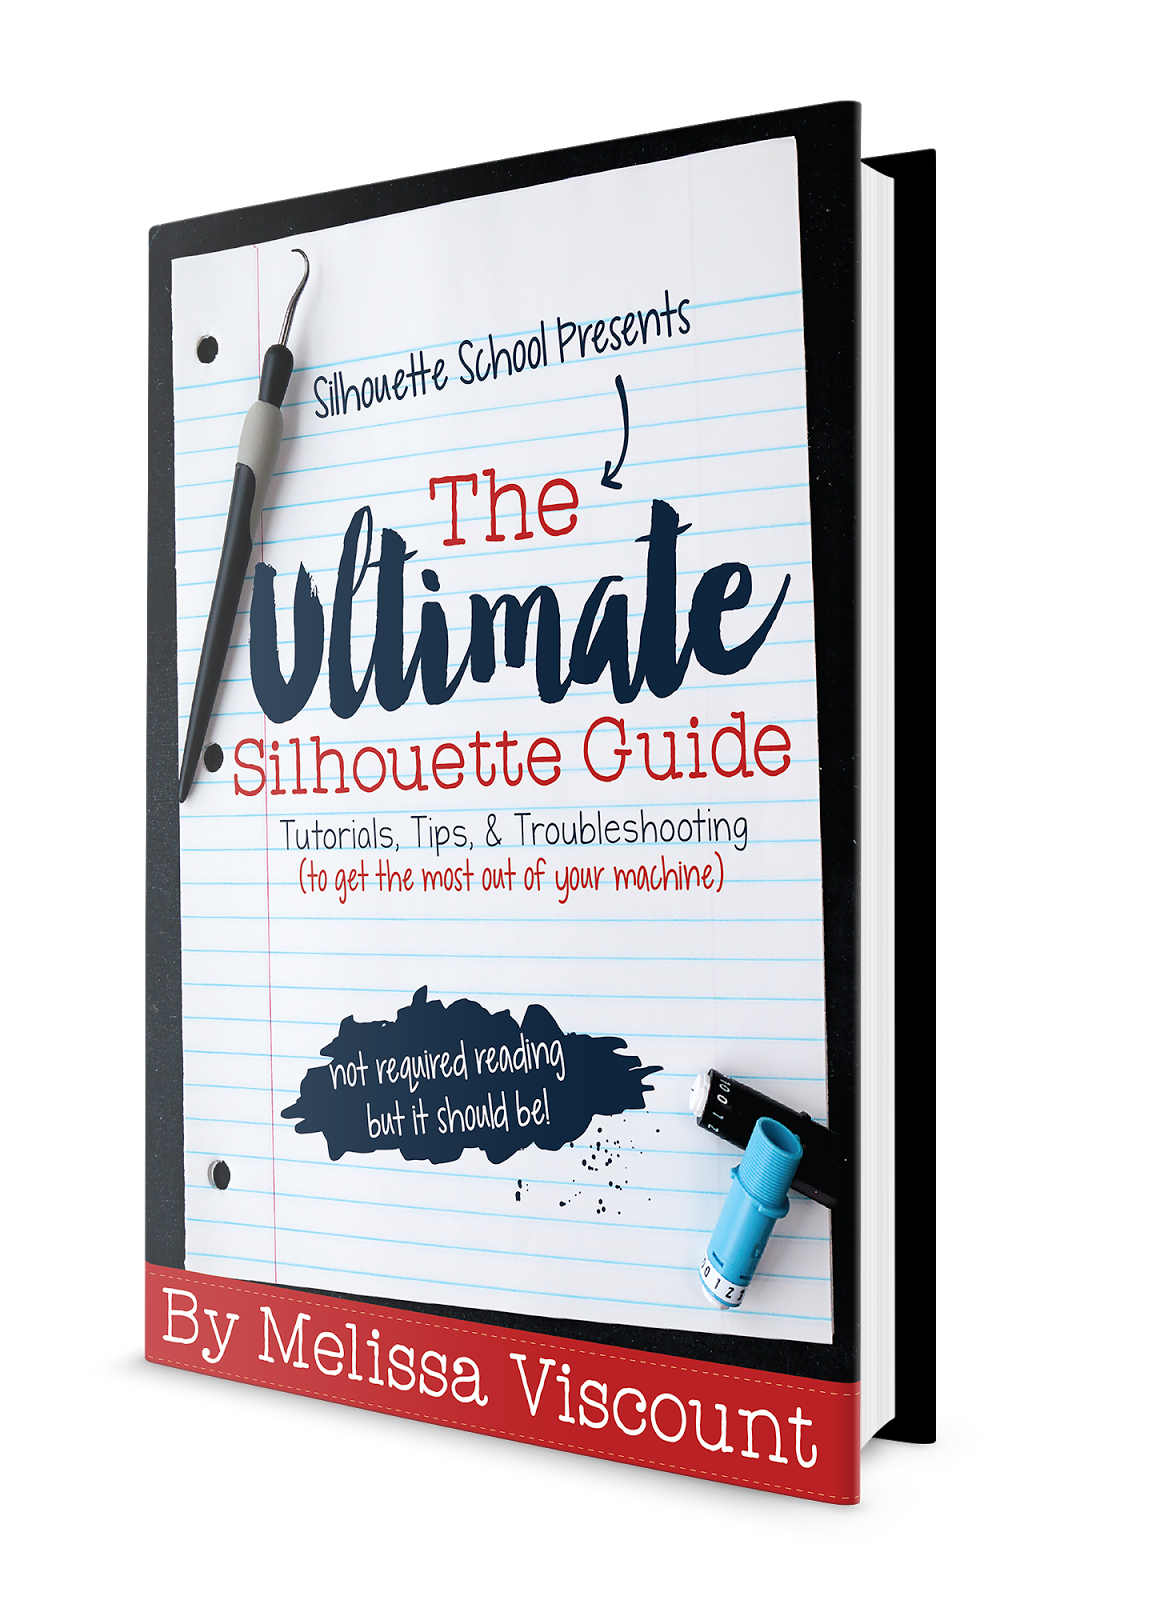 The ultimate silhouette guide ebook release silhouettes the ultimate silhouette guide ebook now on sale silhouetteschoolebook fandeluxe Image collections